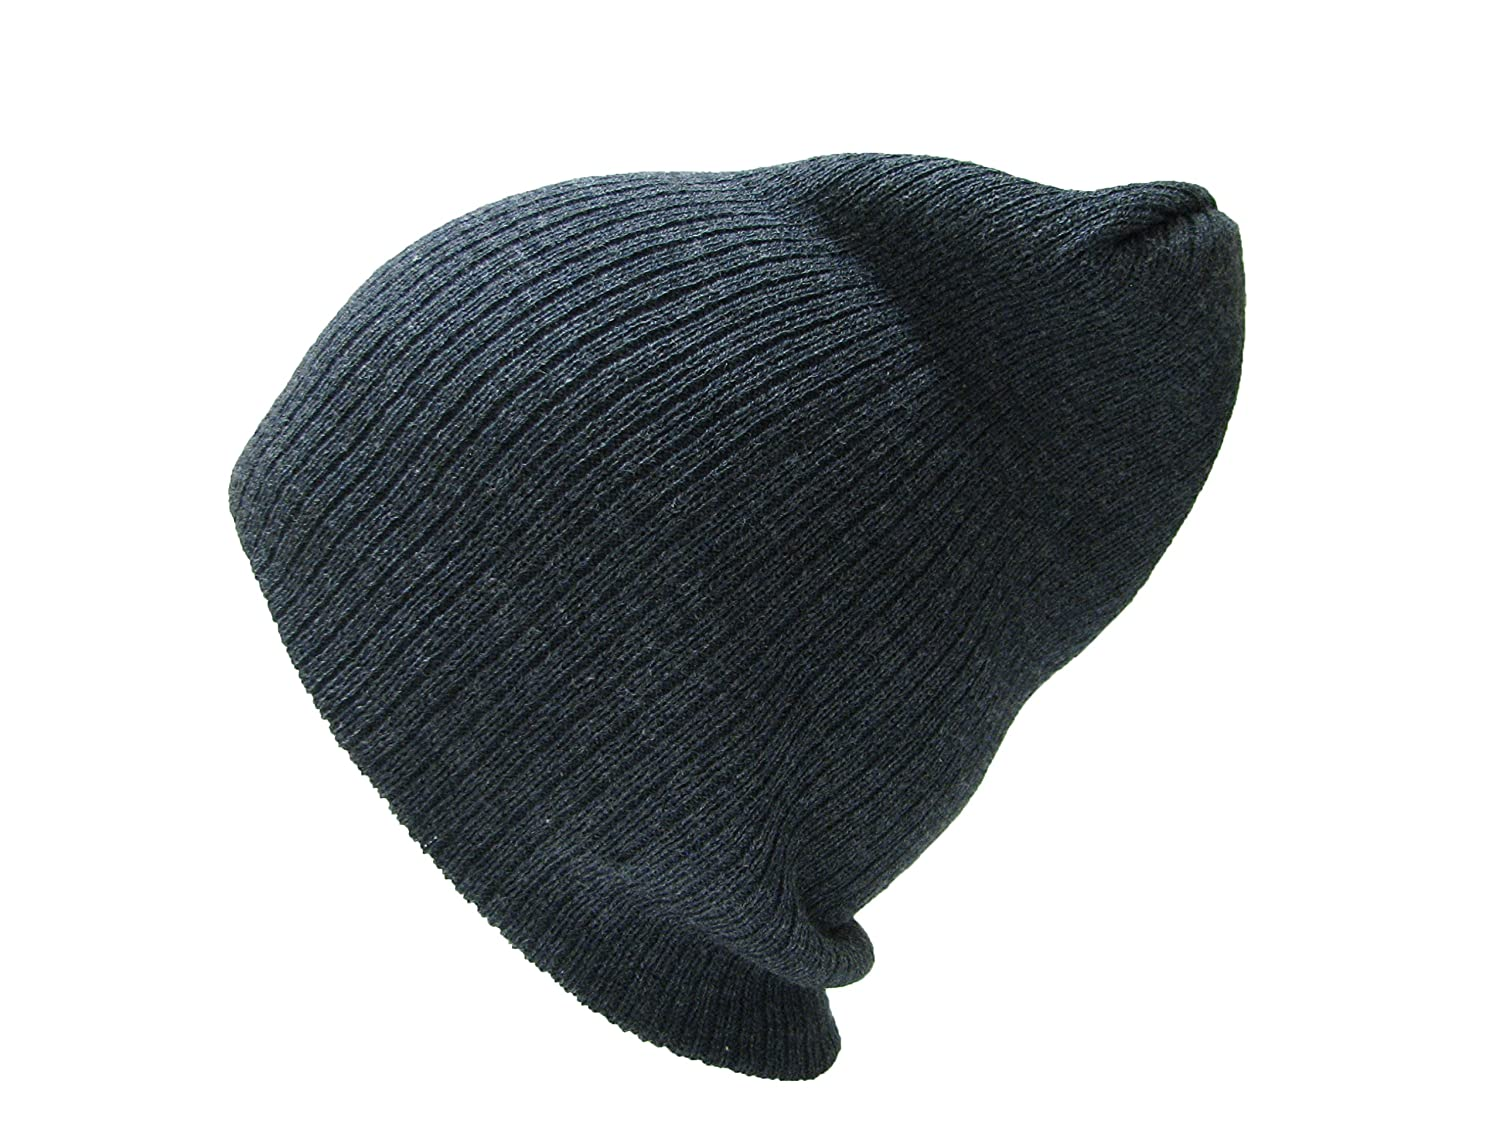 MB Oversized Baggy Fit Slouch Style Beanie Beany Cap - 6 New Colours